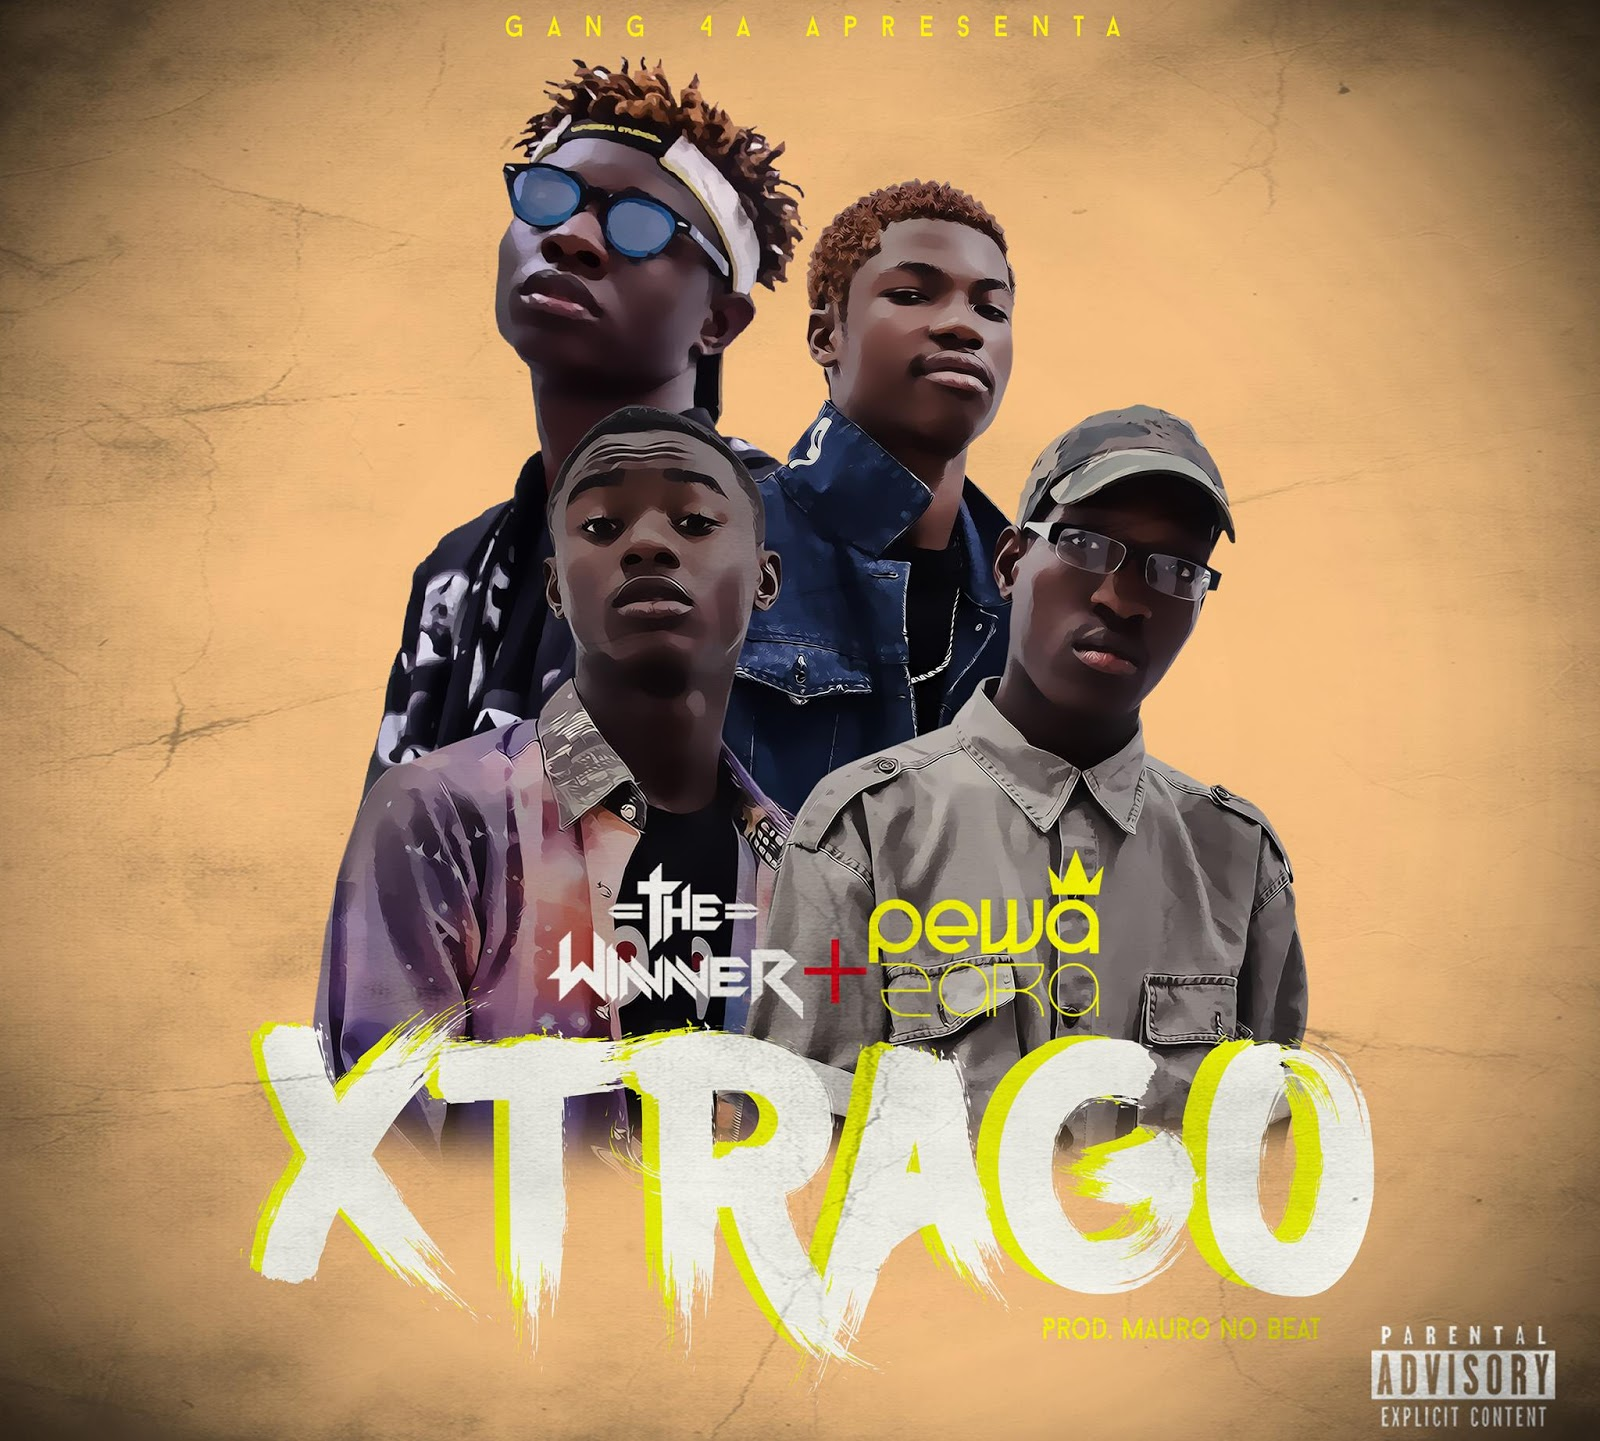 The Winner Feat. Pewa Zara - Xtrago (prod. MauroNoBeat) // Download